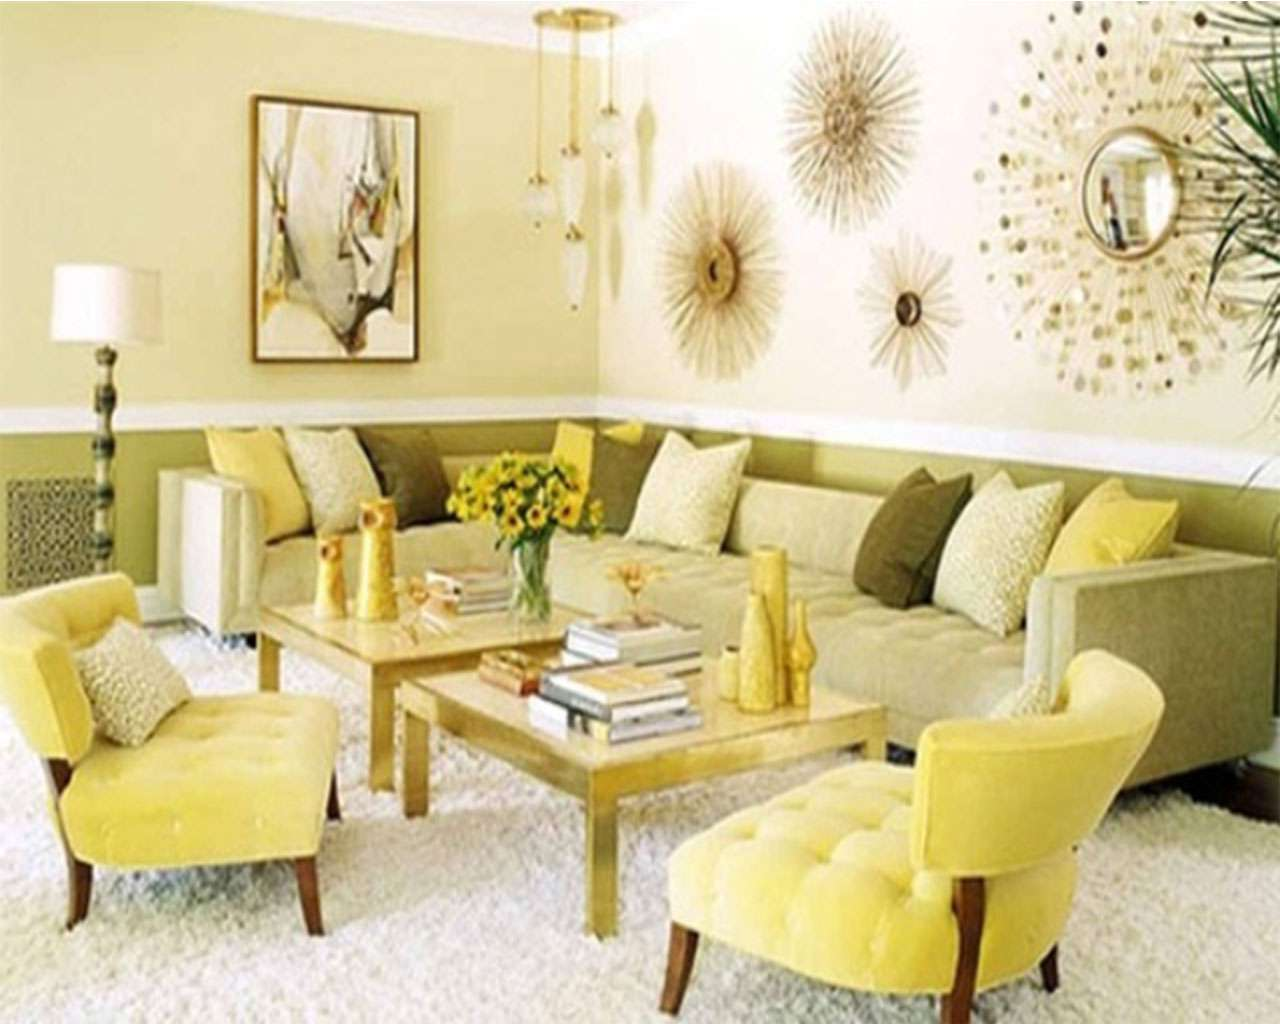 New living room paint colors for spring modern house Yellow green living room